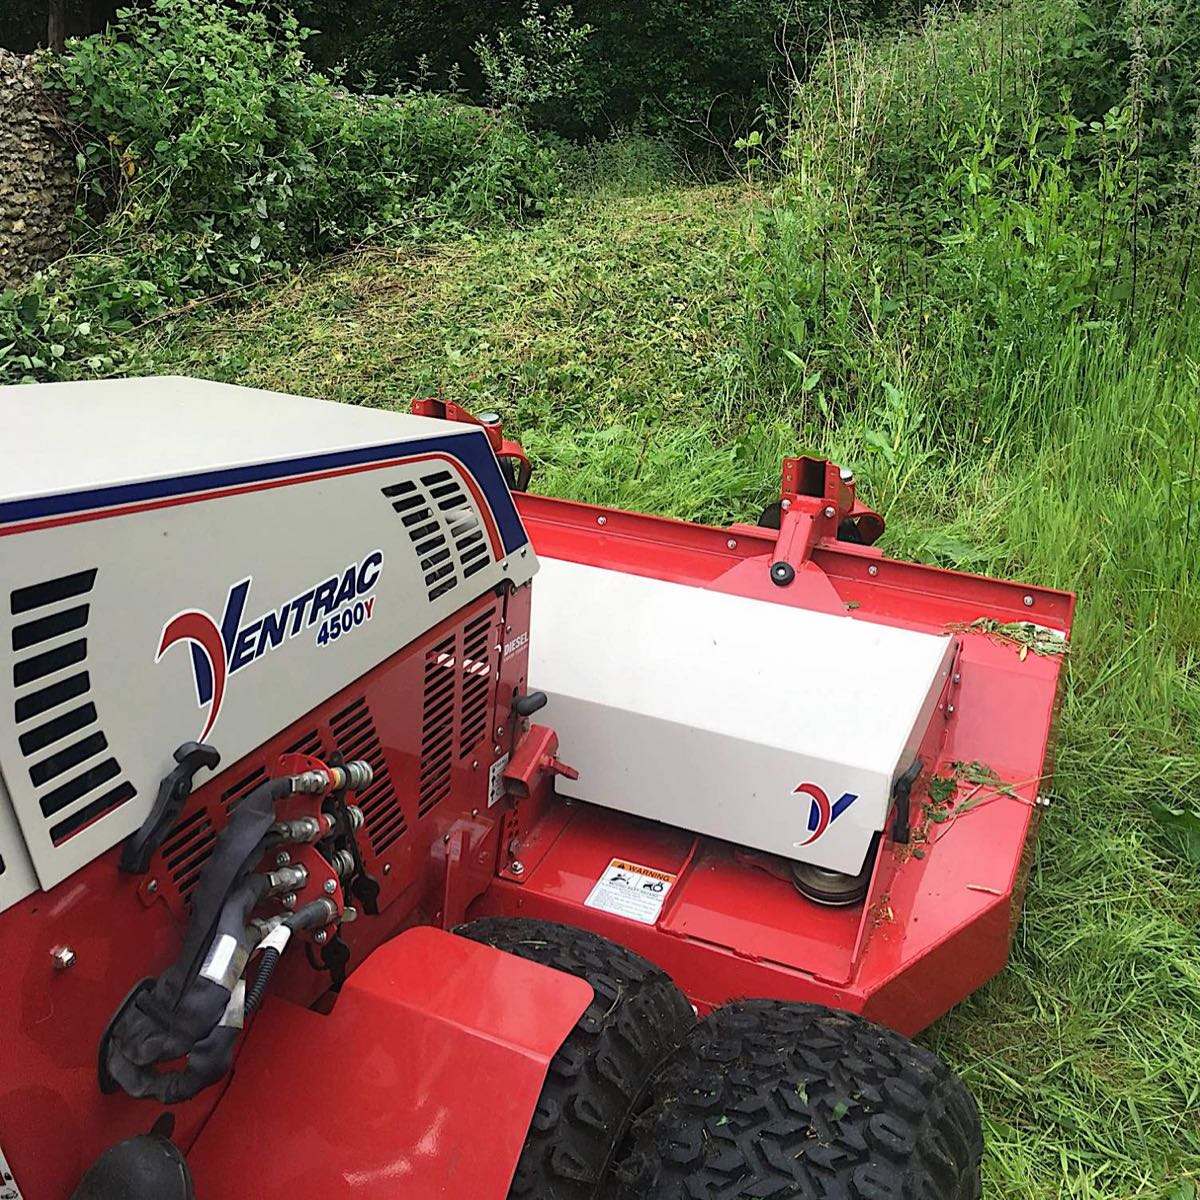 Ventrac Equipment at RT Machinery Ltd in Aylesbury, United